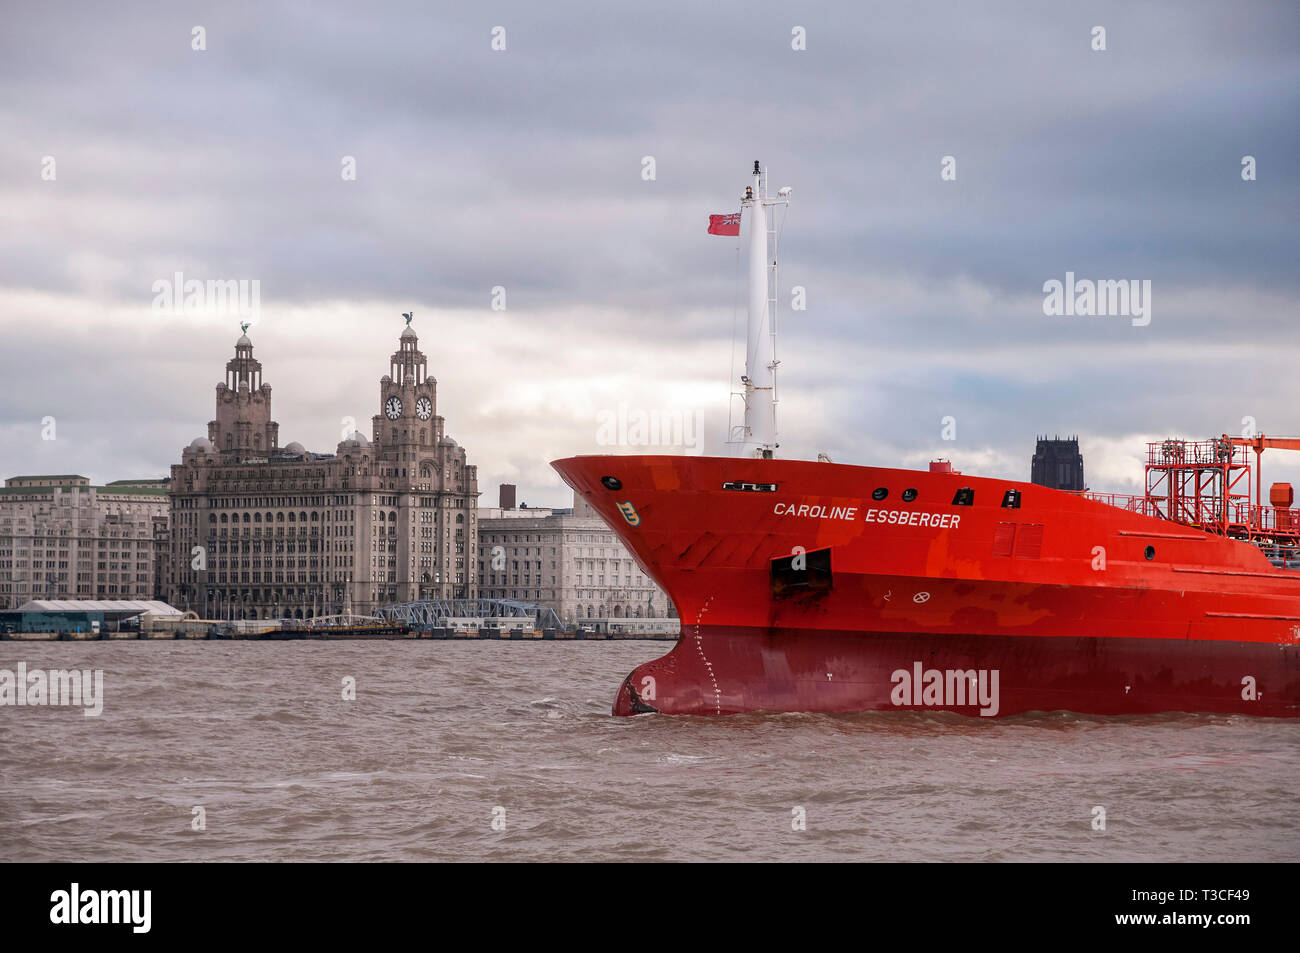 The oil and chemical tanker ship the Caroline Essberger from Holland in the river Mersey. The Royal Liver building in the background. - Stock Image